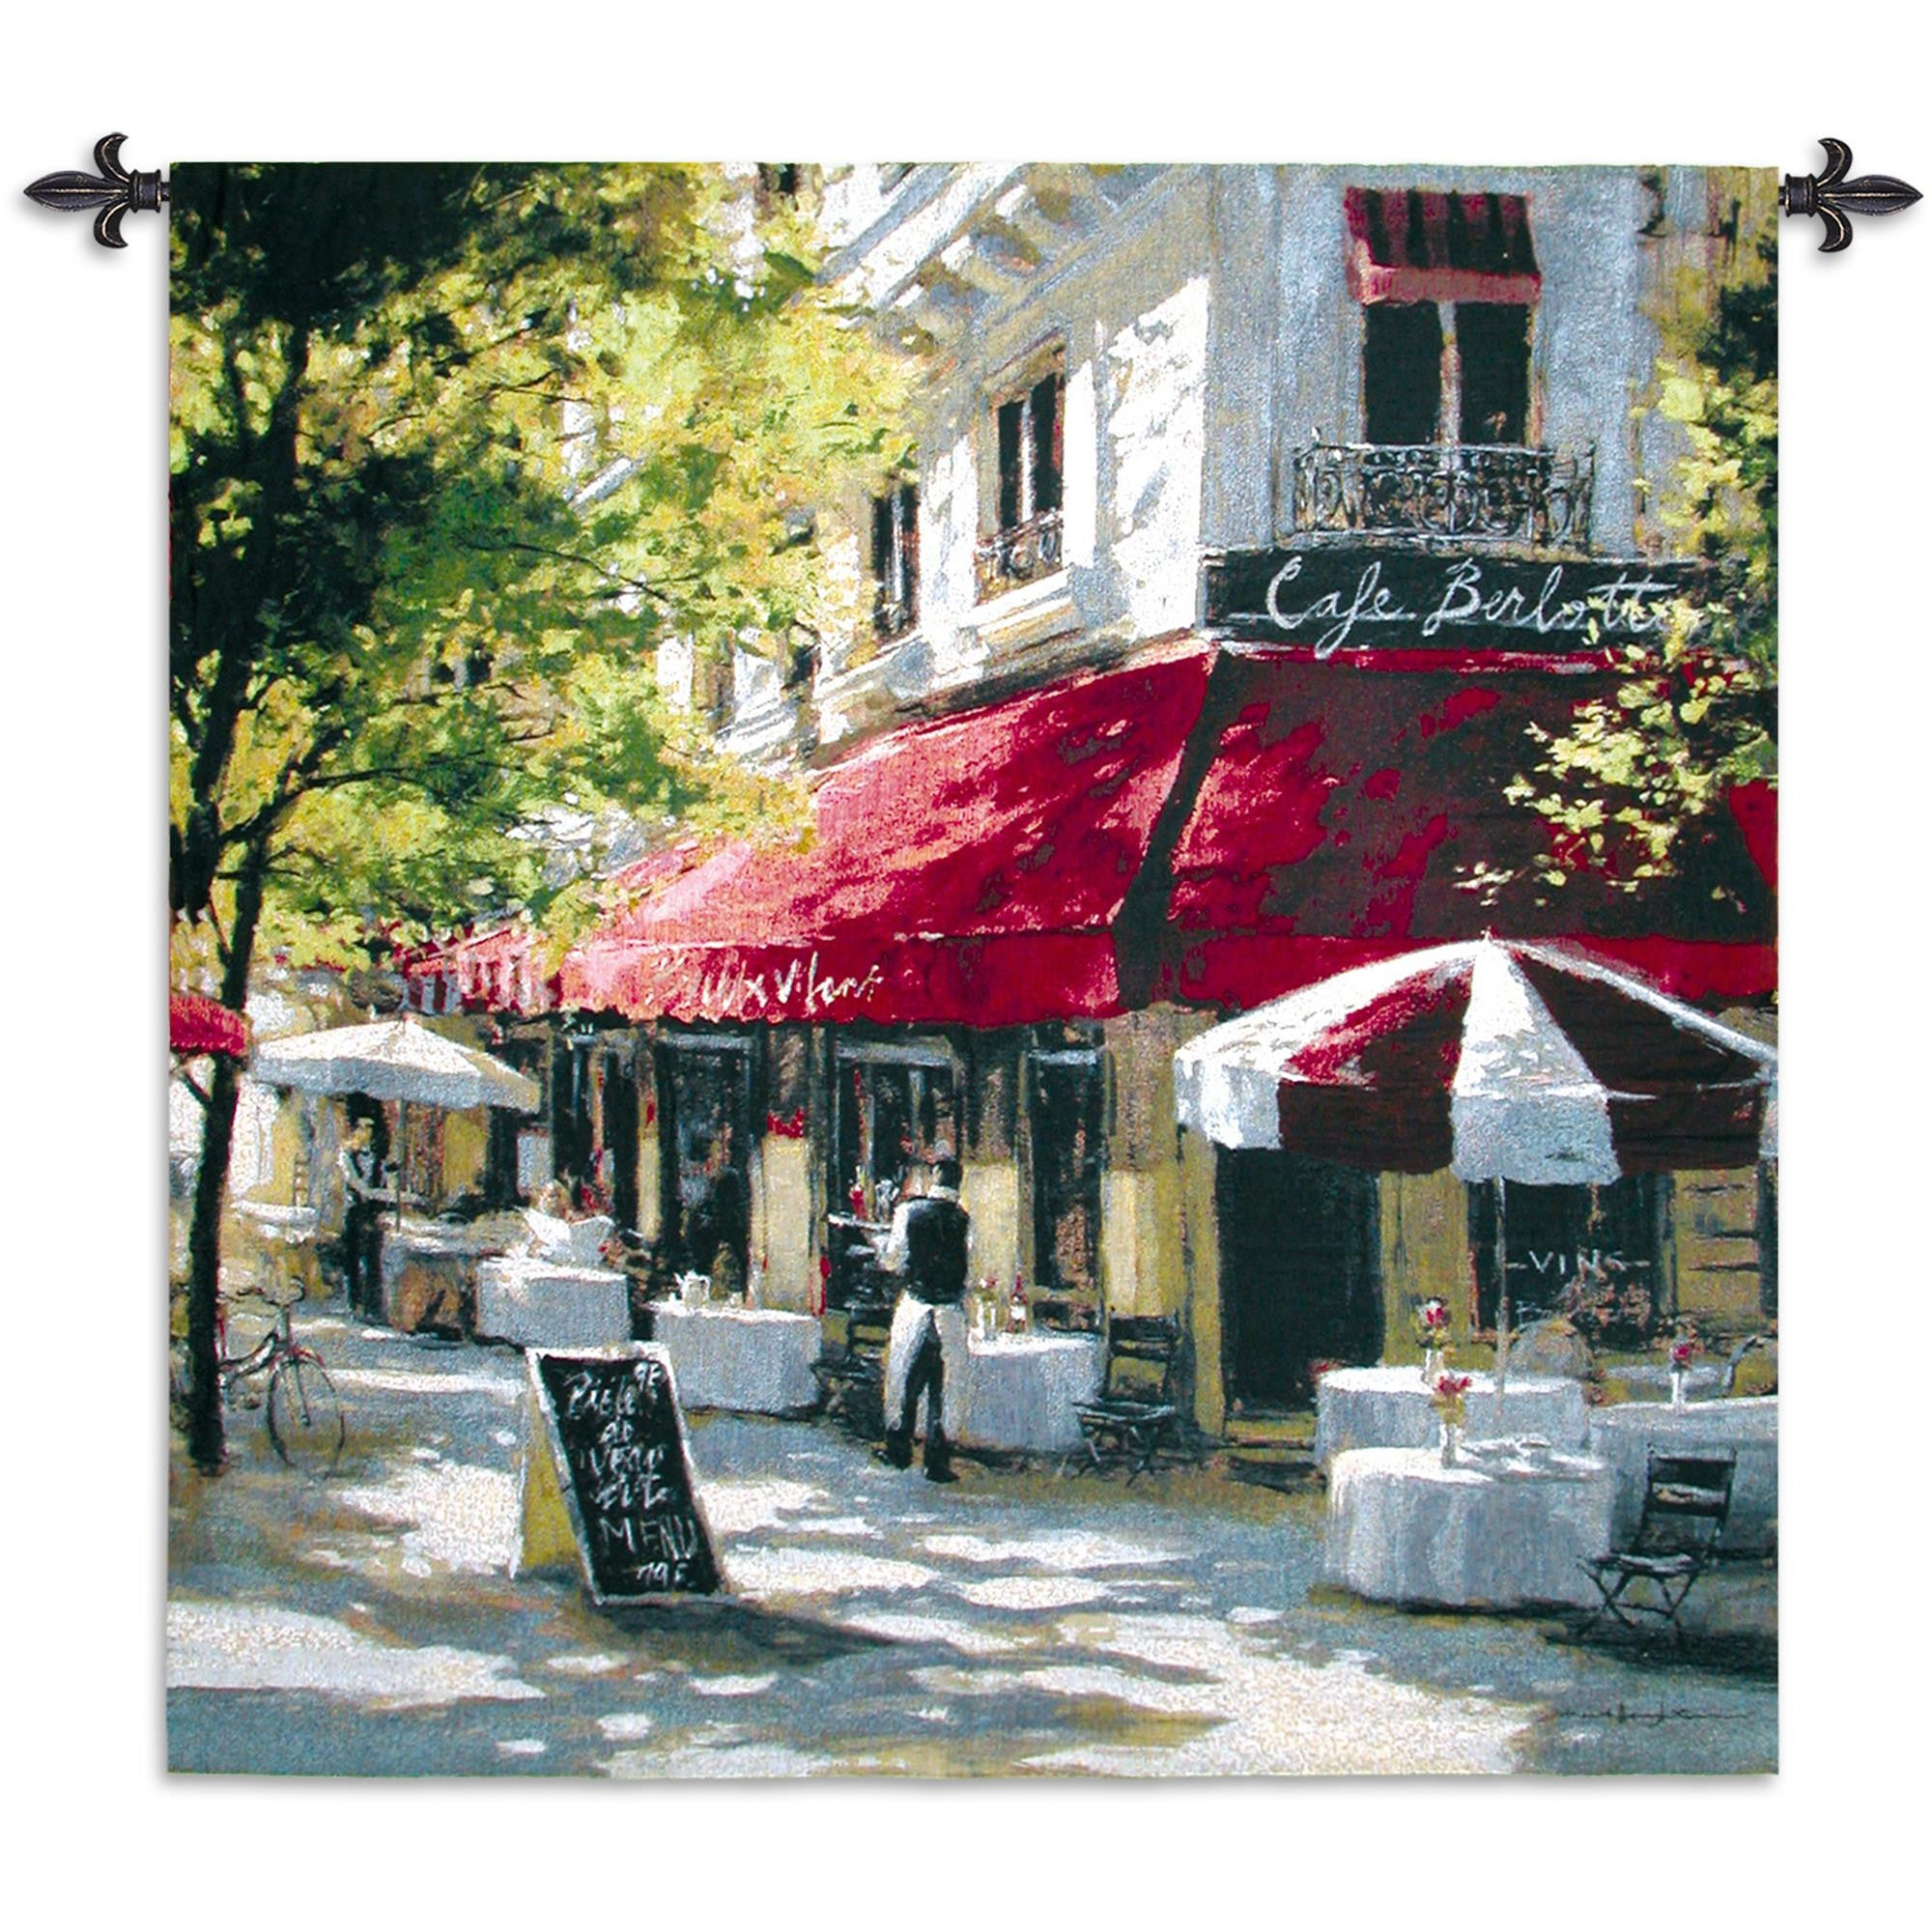 Cafe Francette Hand Finished European Style Woven Wall Tapestry